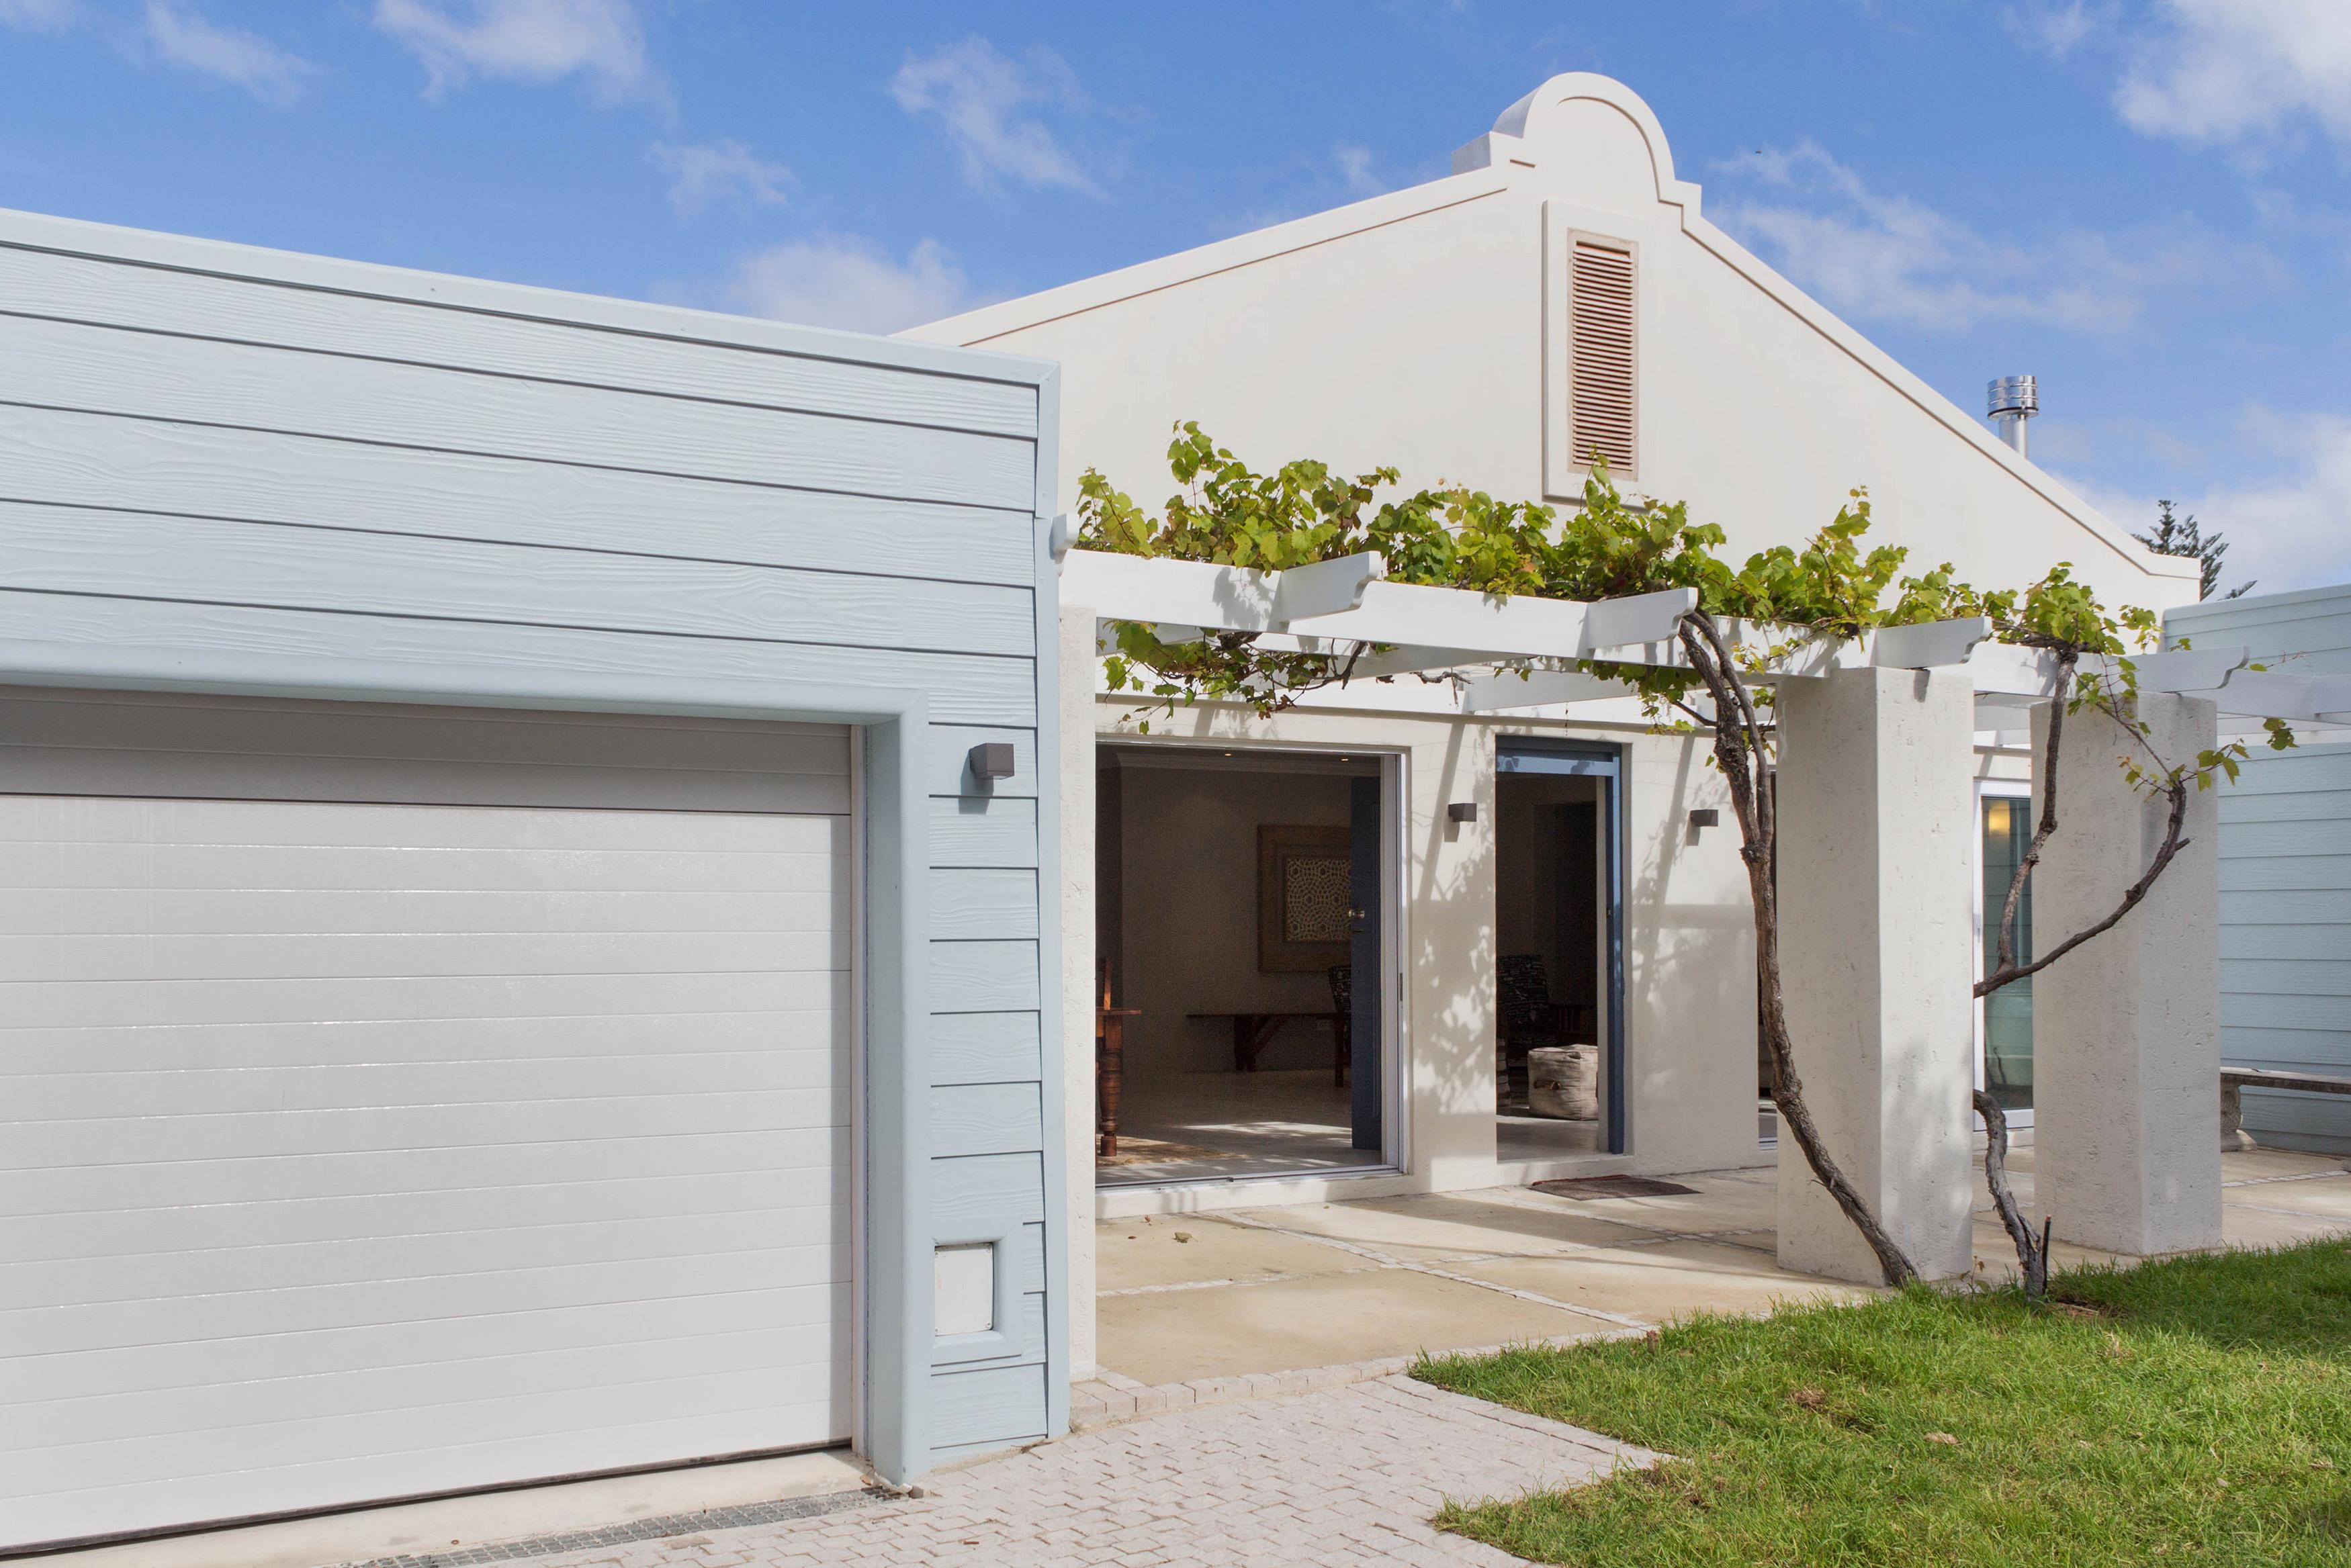 4 Bedroom House For Sale in Hermanus - Private Sale - MR135580